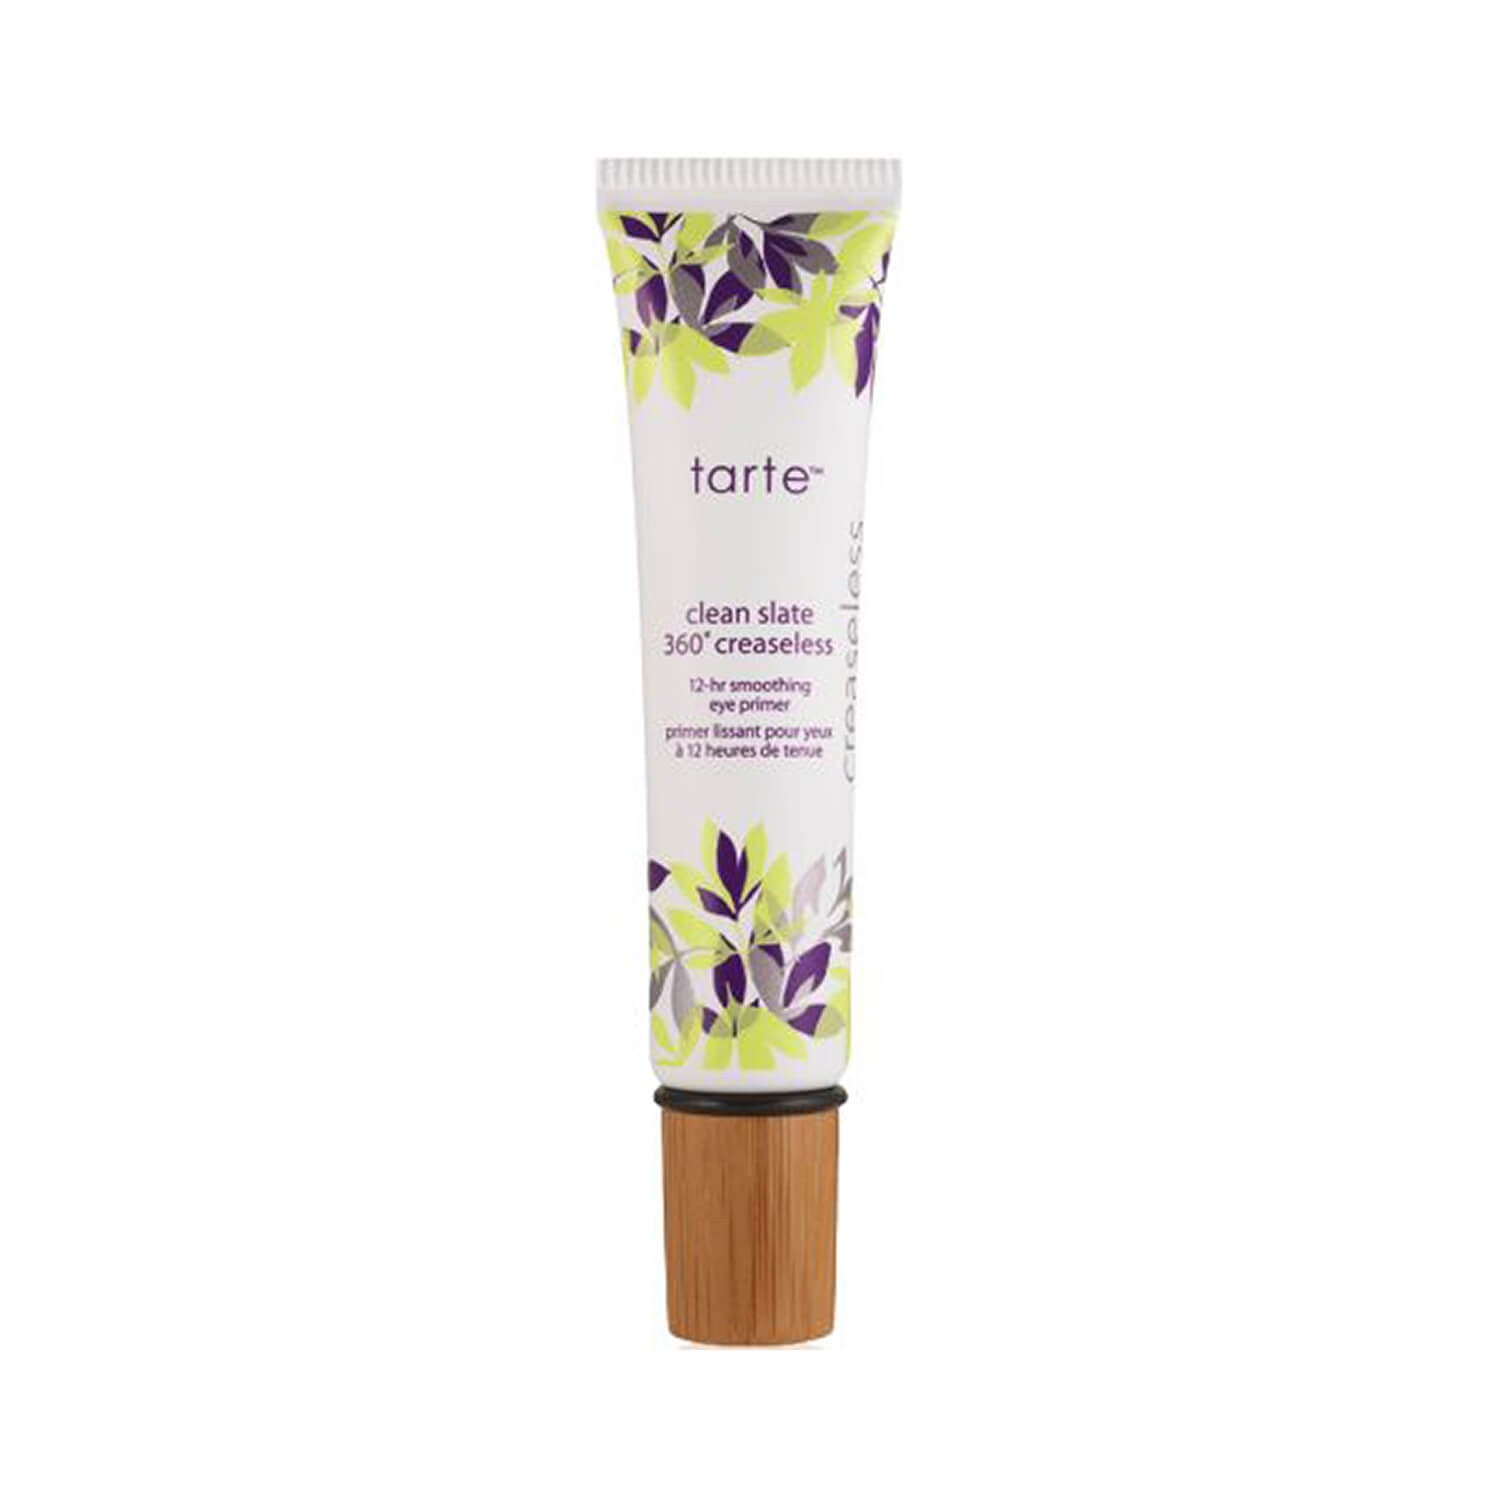 TARTE clean slate™ 360º creaseless 12-hr smoothing eye primer